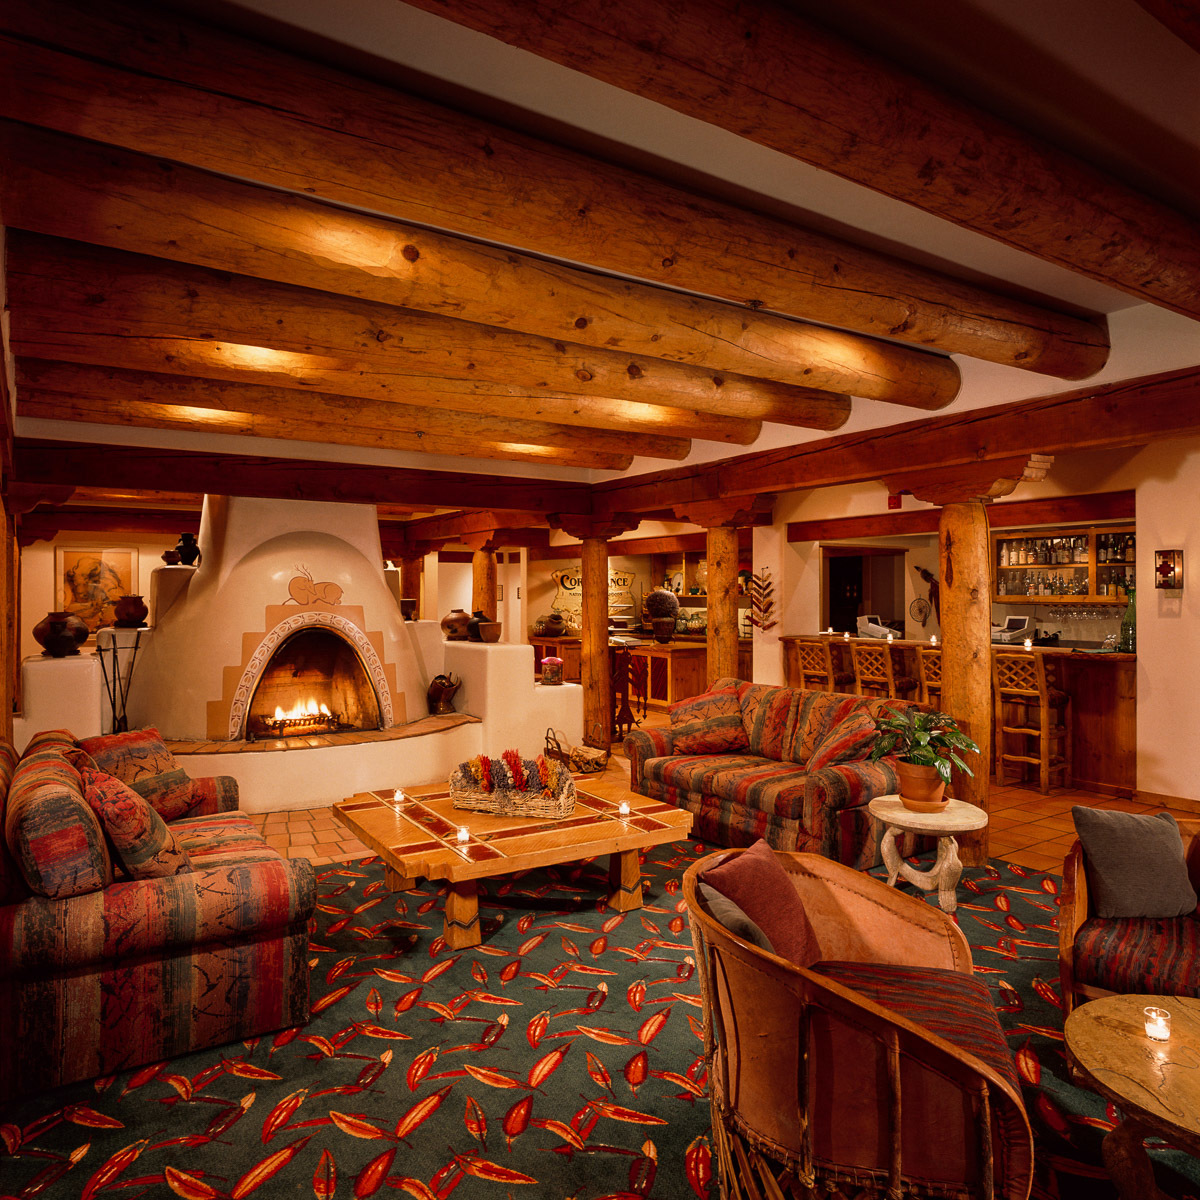 JohnMacLean_HotelSantaFe_Fireplace_NoModels_PF